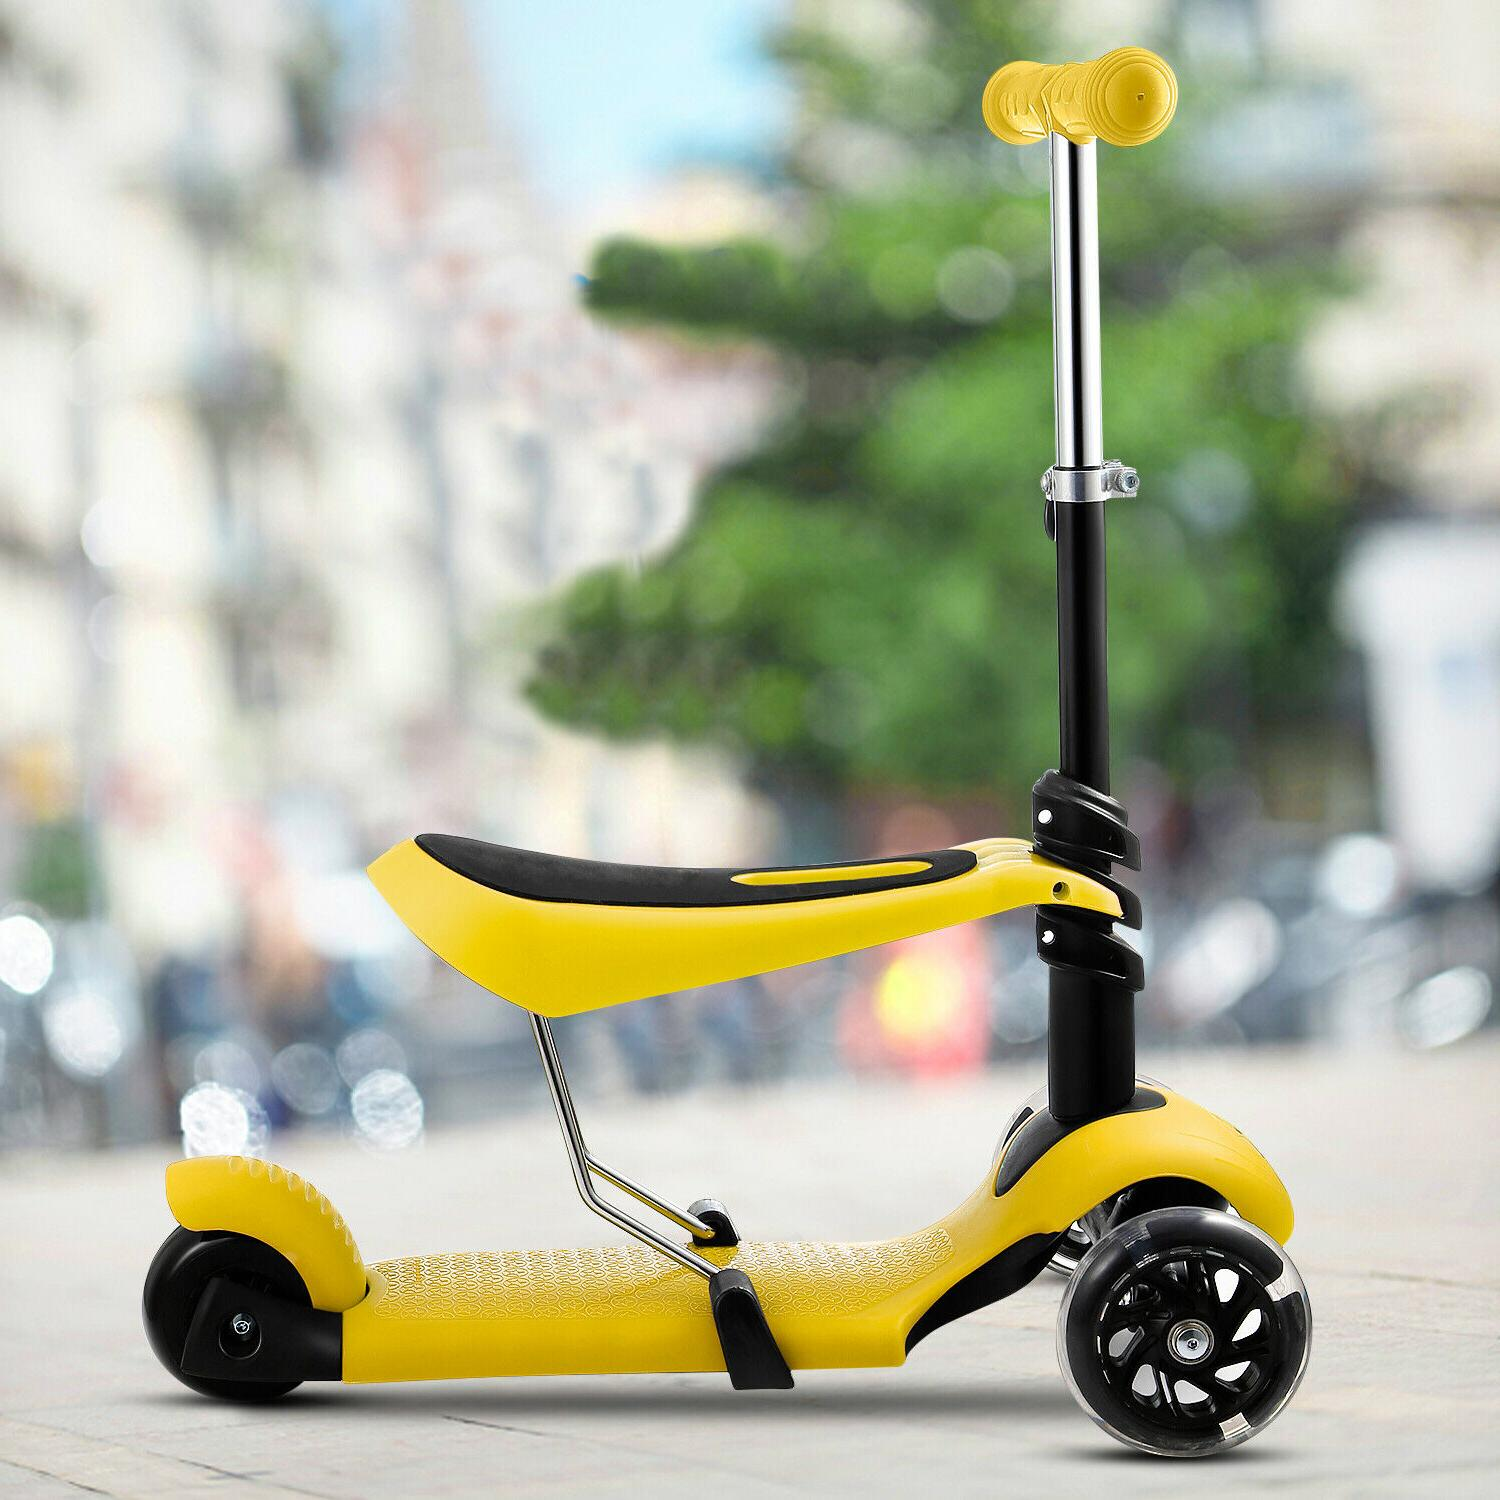 2 in 1 scooter with removable seat